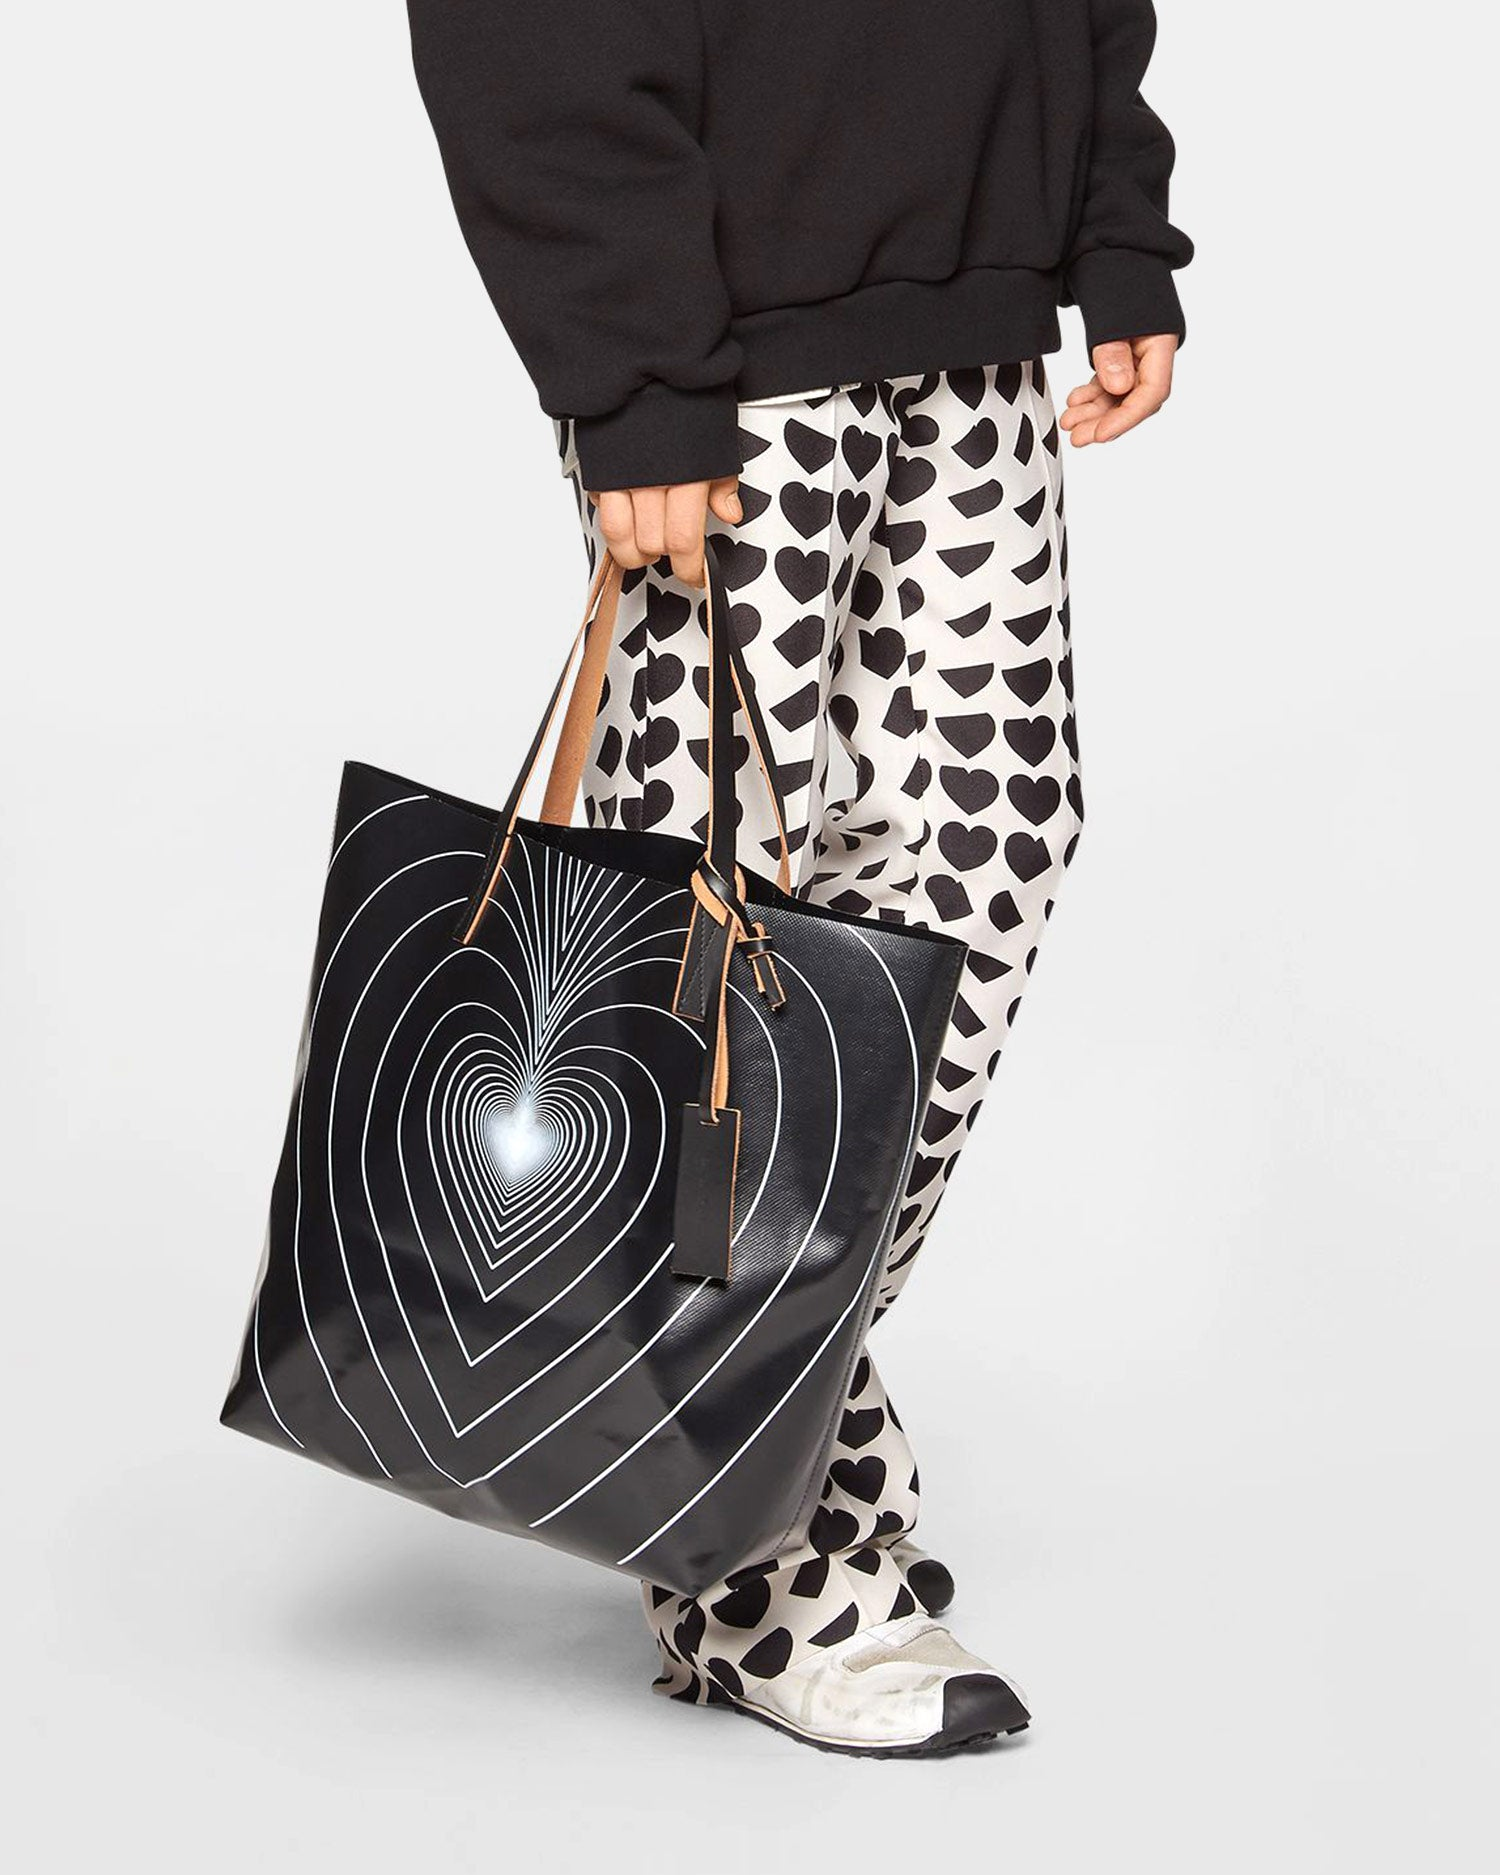 Marni North-South Infinity Heart Tote